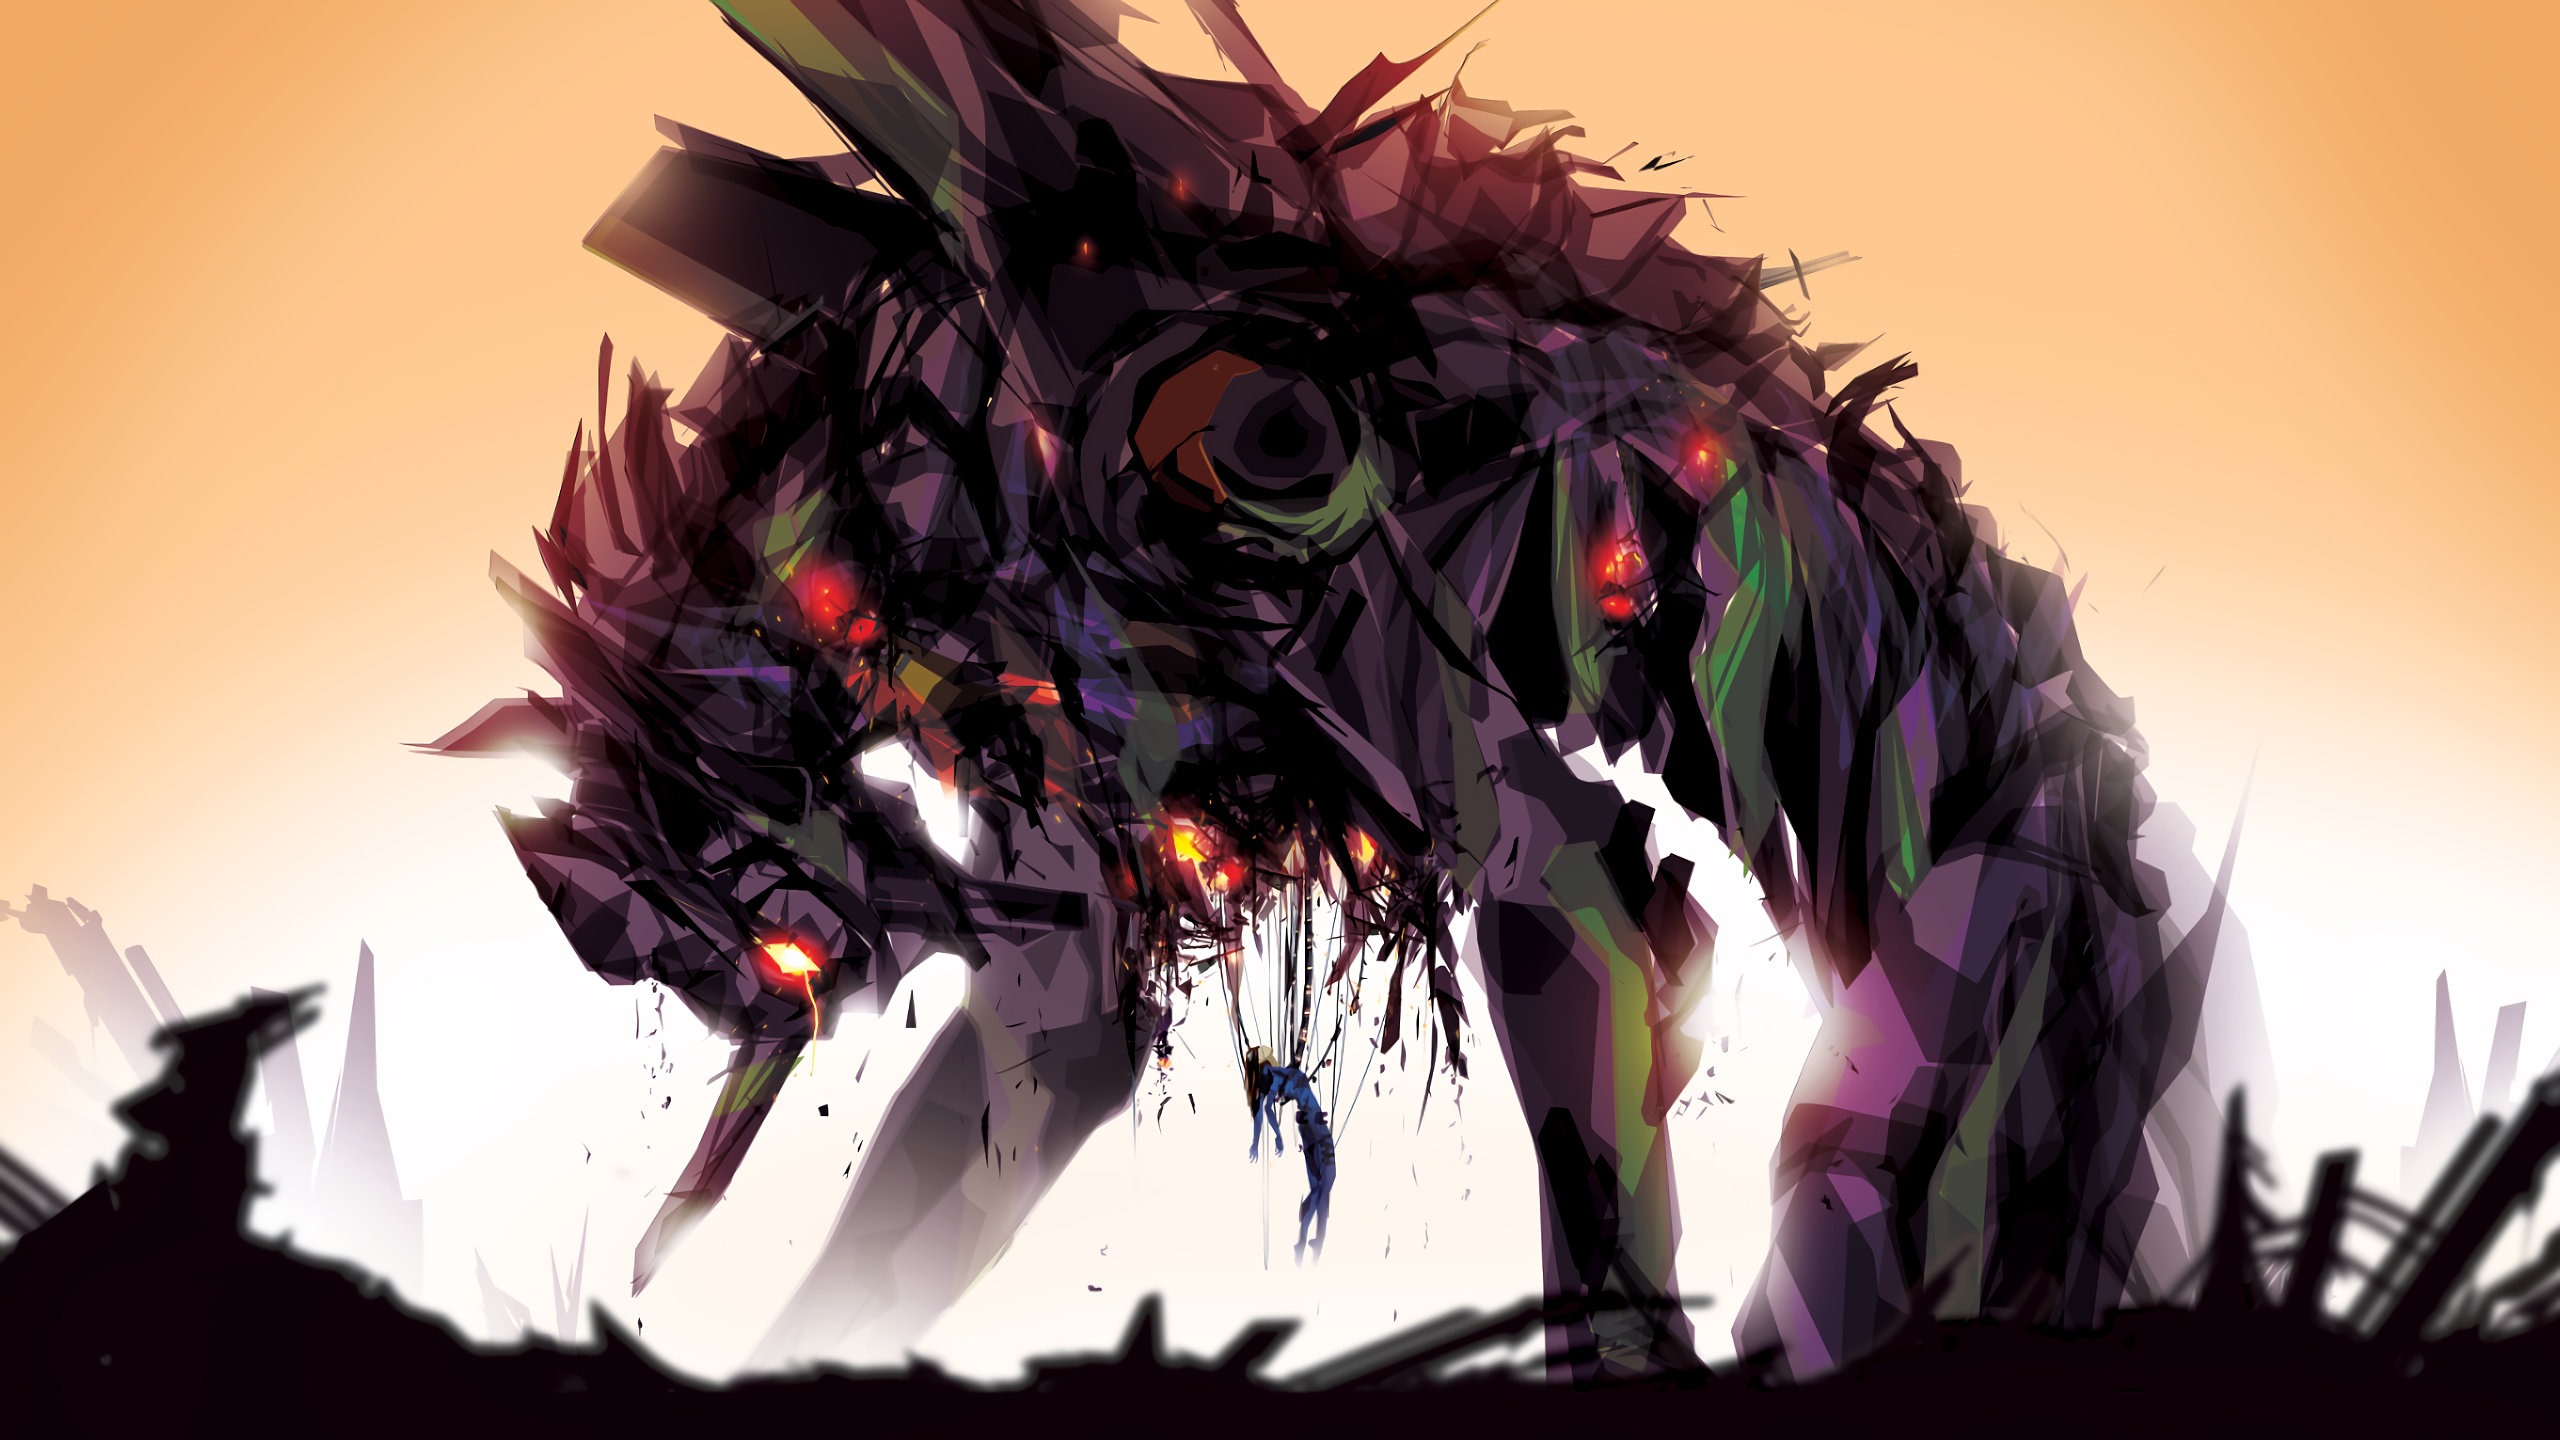 Download hd 2560x1440 Neon Genesis Evangelion PC background ID:214905 for free